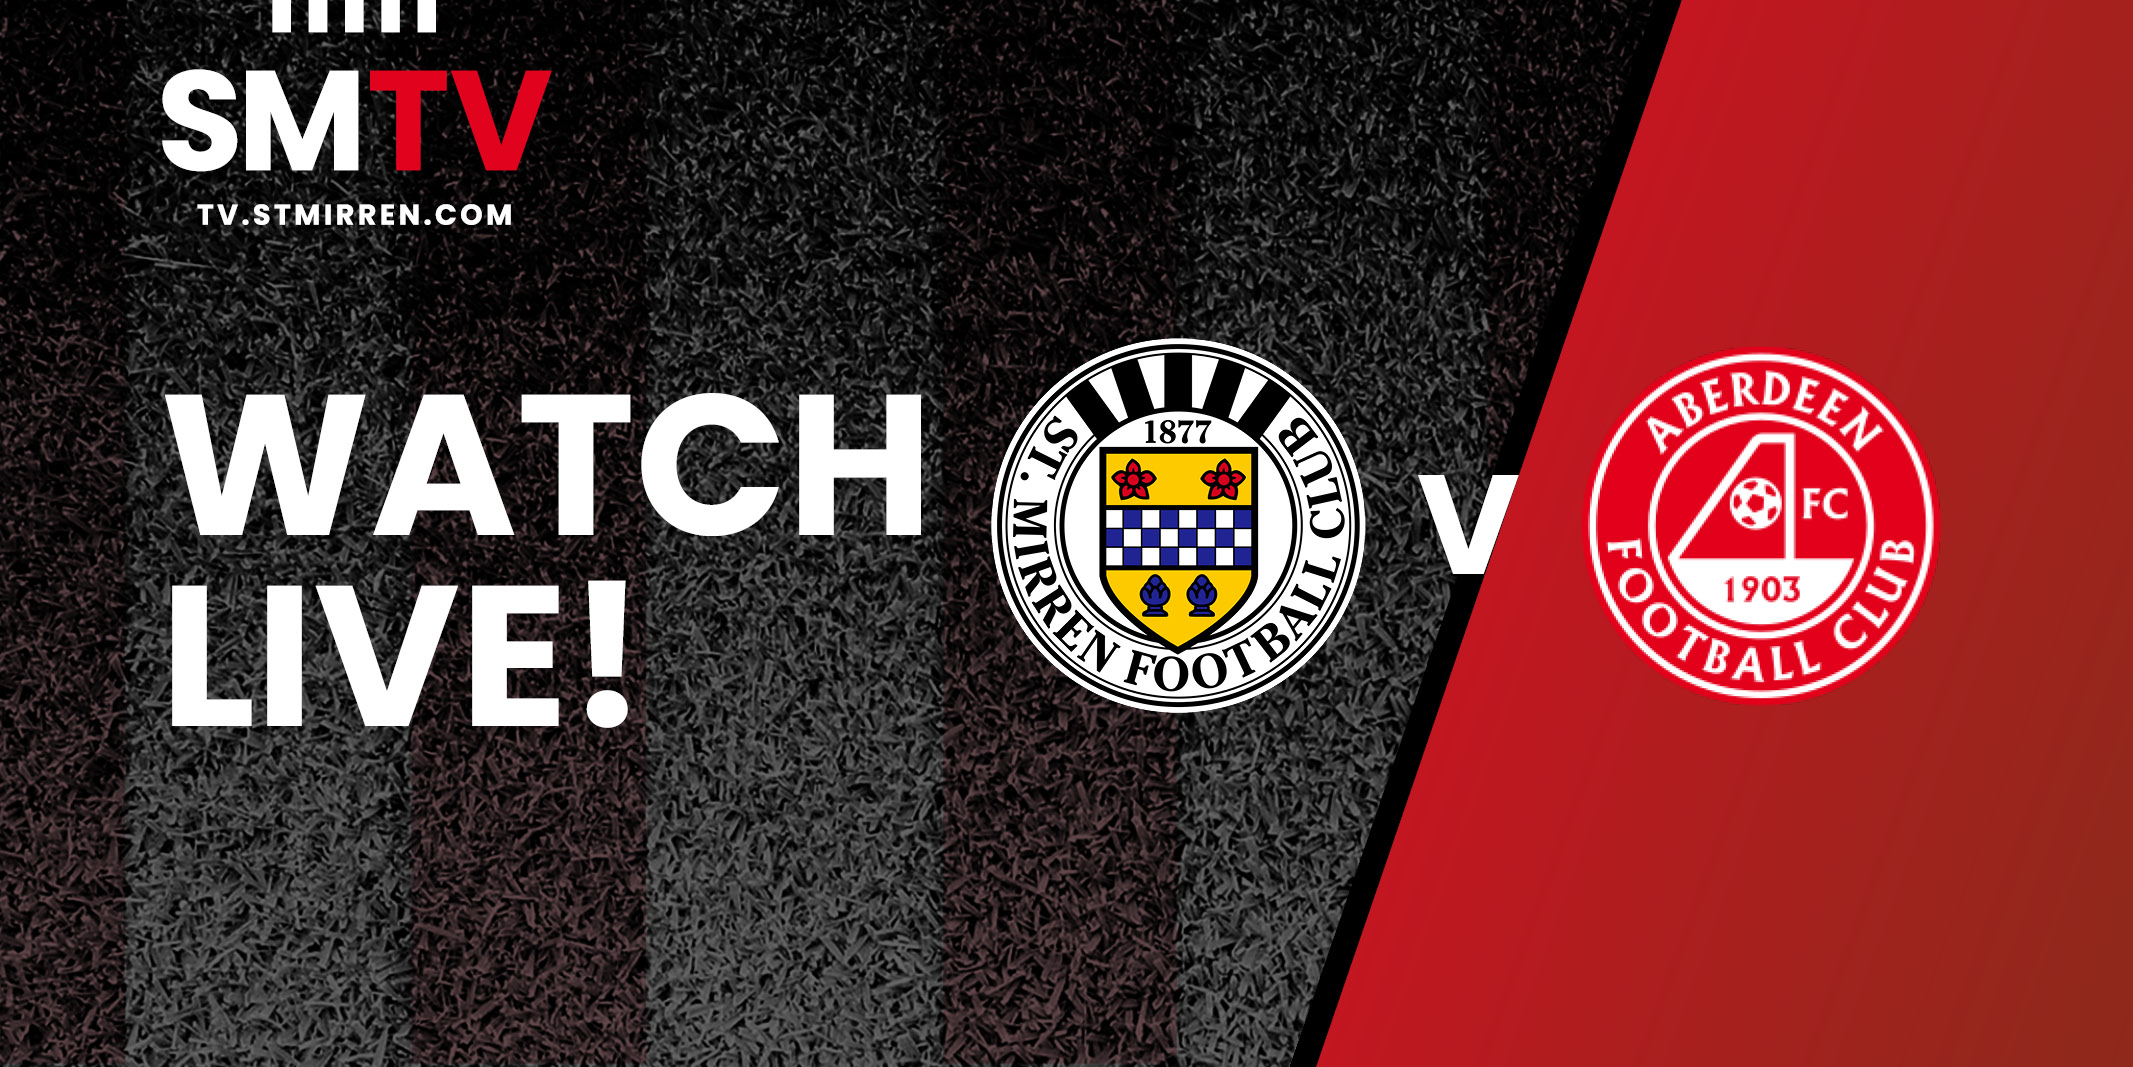 Up next: St Mirren v Aberdeen (5th Dec)